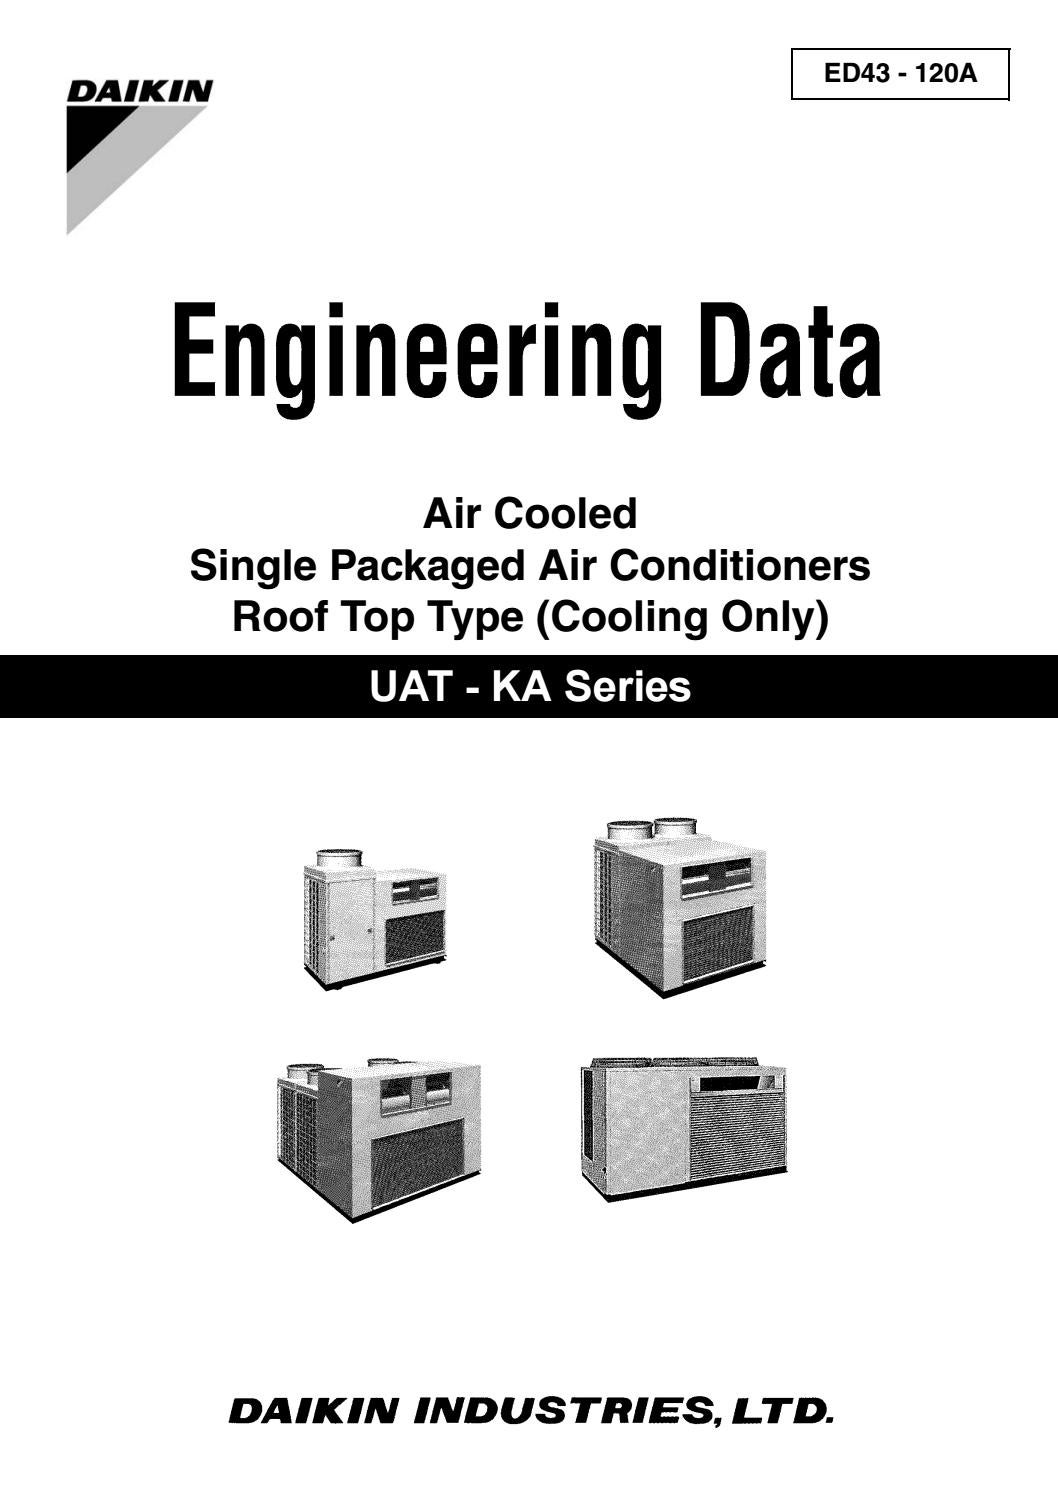 Daikin Engineering Data Air Cooled Single Packaged Conditioners 2005 International Wiring Diagram Conditioner Roof Top Type Cooling Only Ed4 By Education Vietmastec Issuu